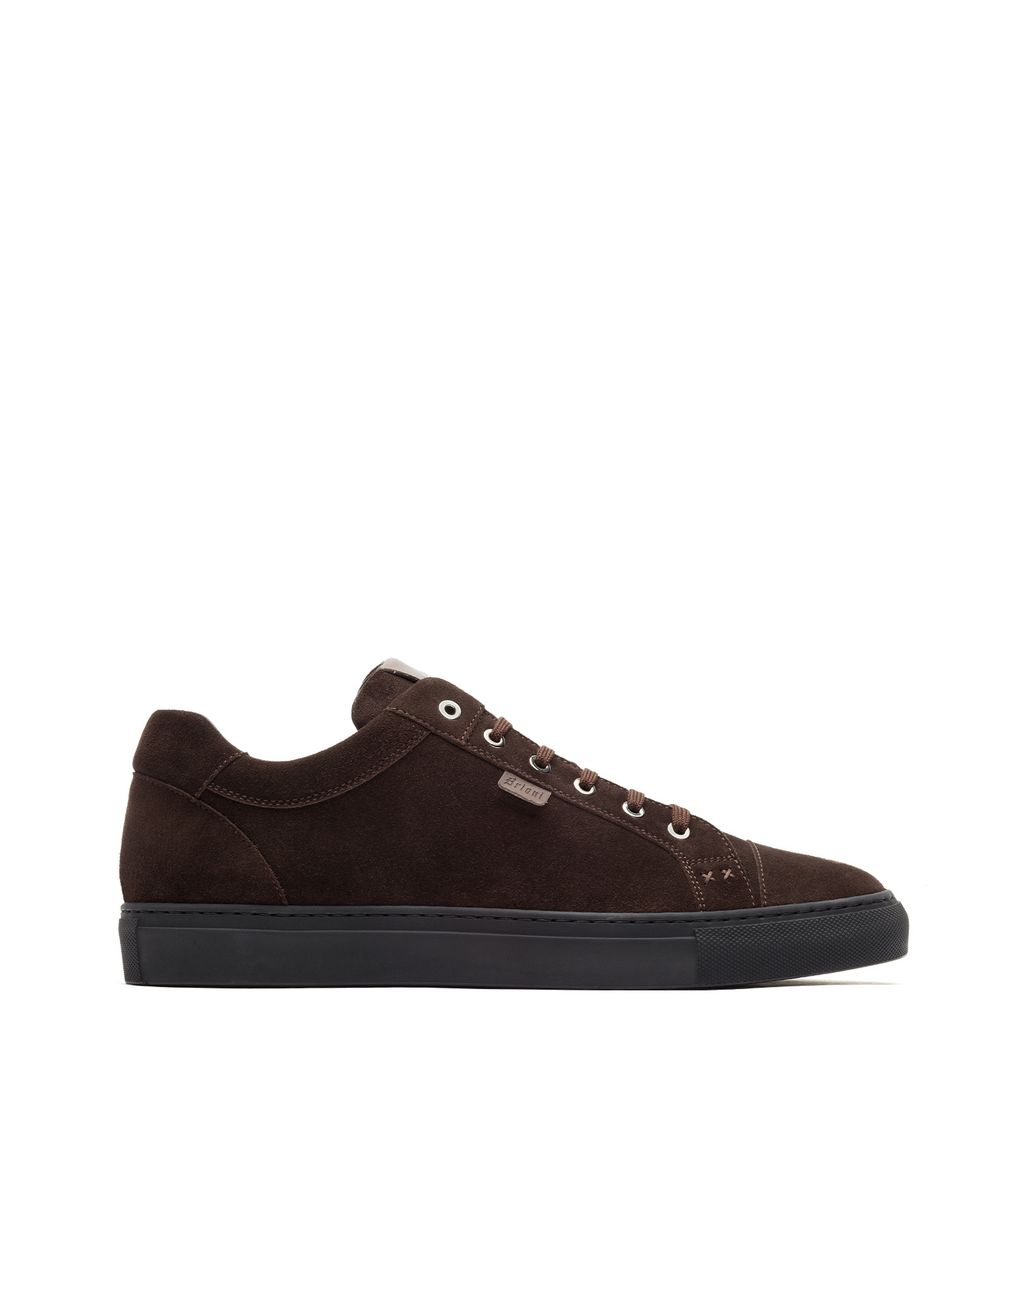 BRIONI Brown Suede Sneakers Sneakers Man f